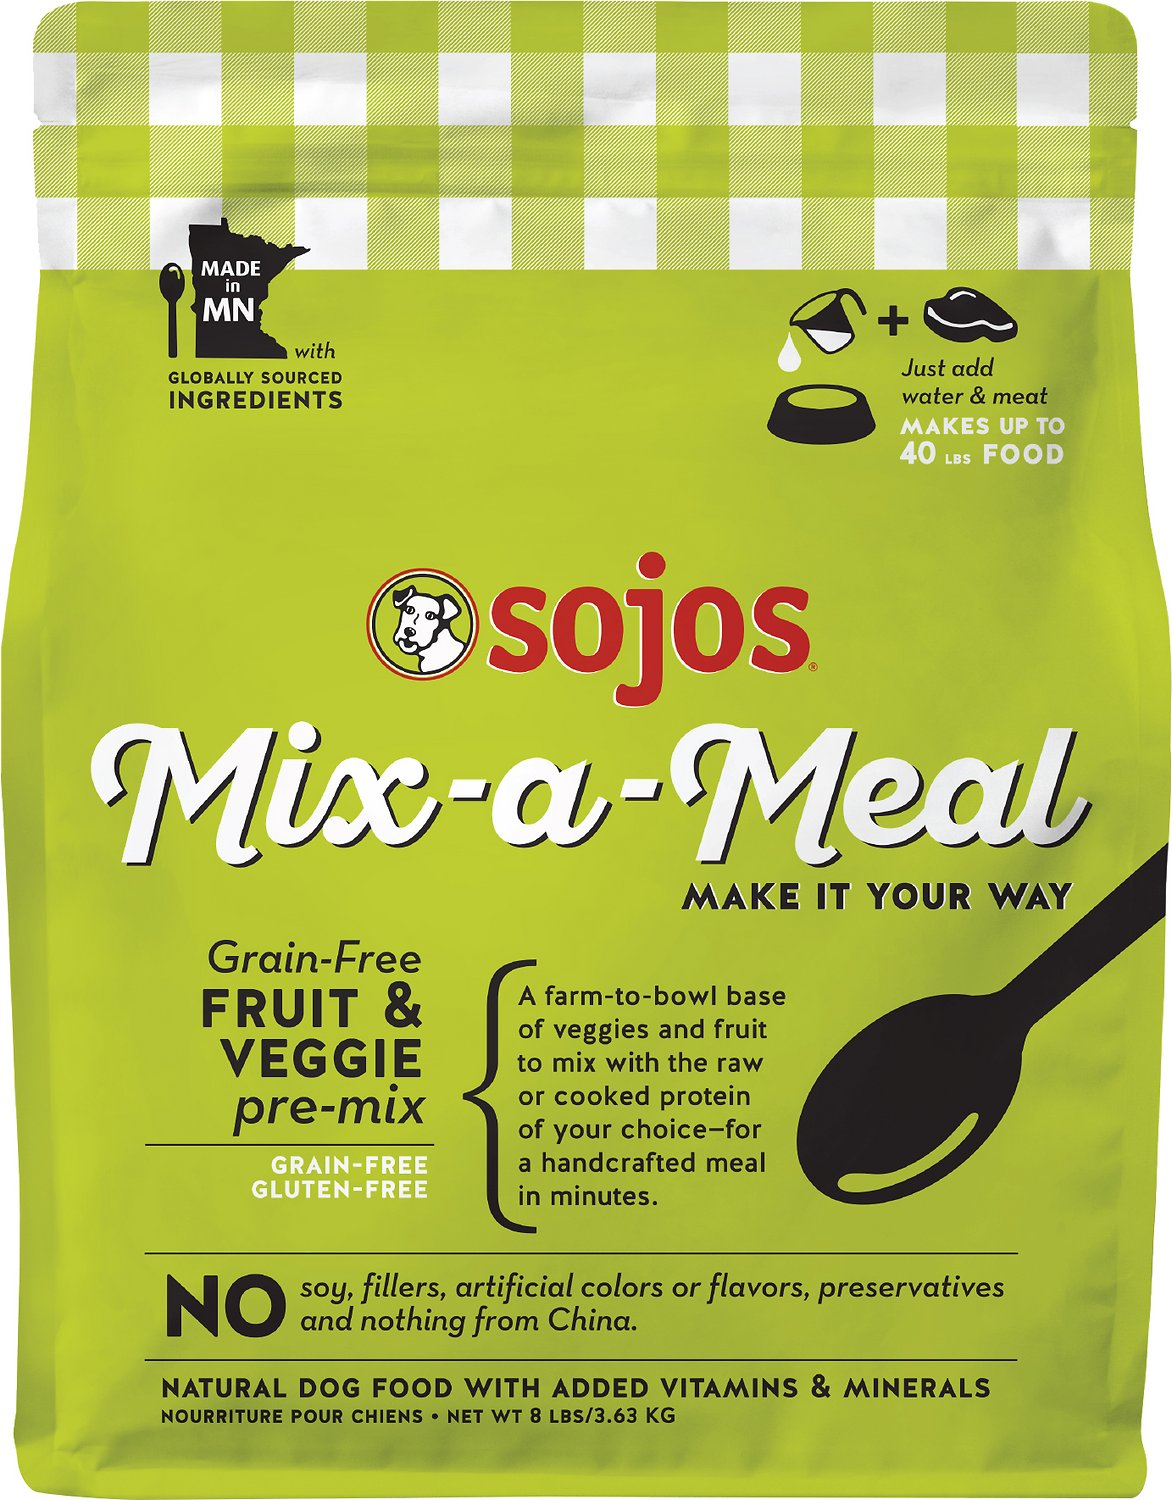 Sojos Mix-a-Meal GF Fruit & Veggie Pre-Mix Dog Food - Add Meat & Water